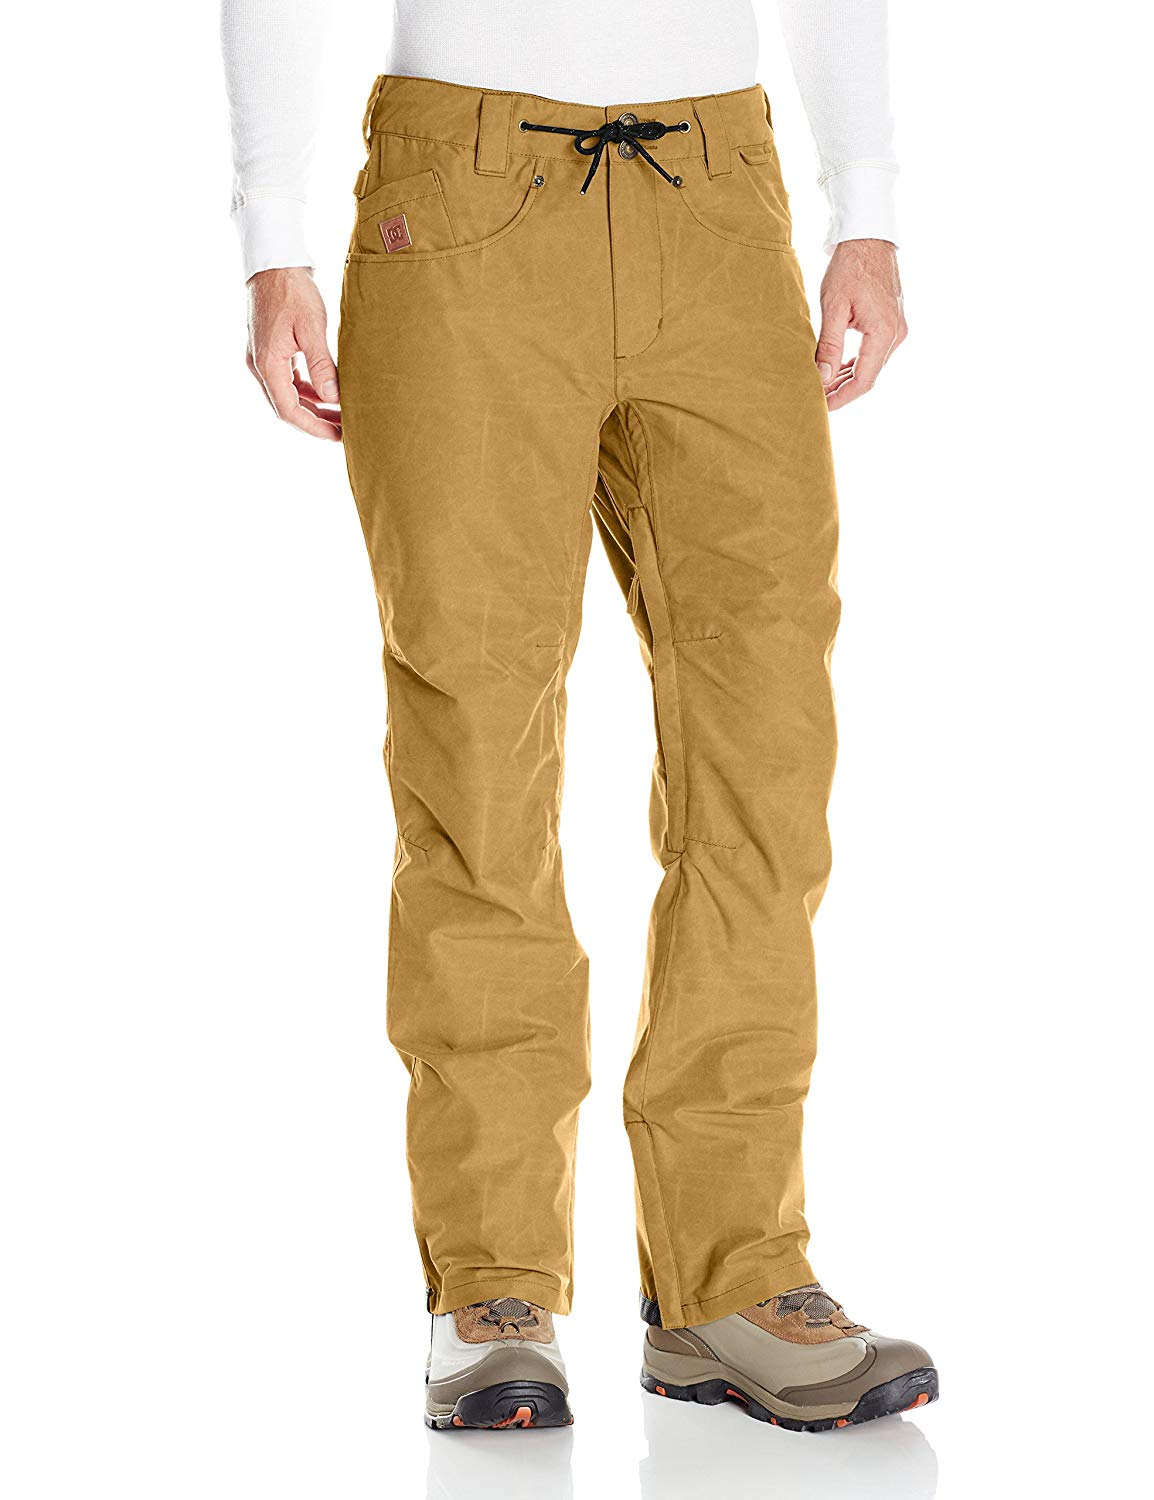 e28073f9909 Get Quotations · DC Men s Relay 15k Water Proof Denim Jean Style 5 Pocket Snowboard  Pants